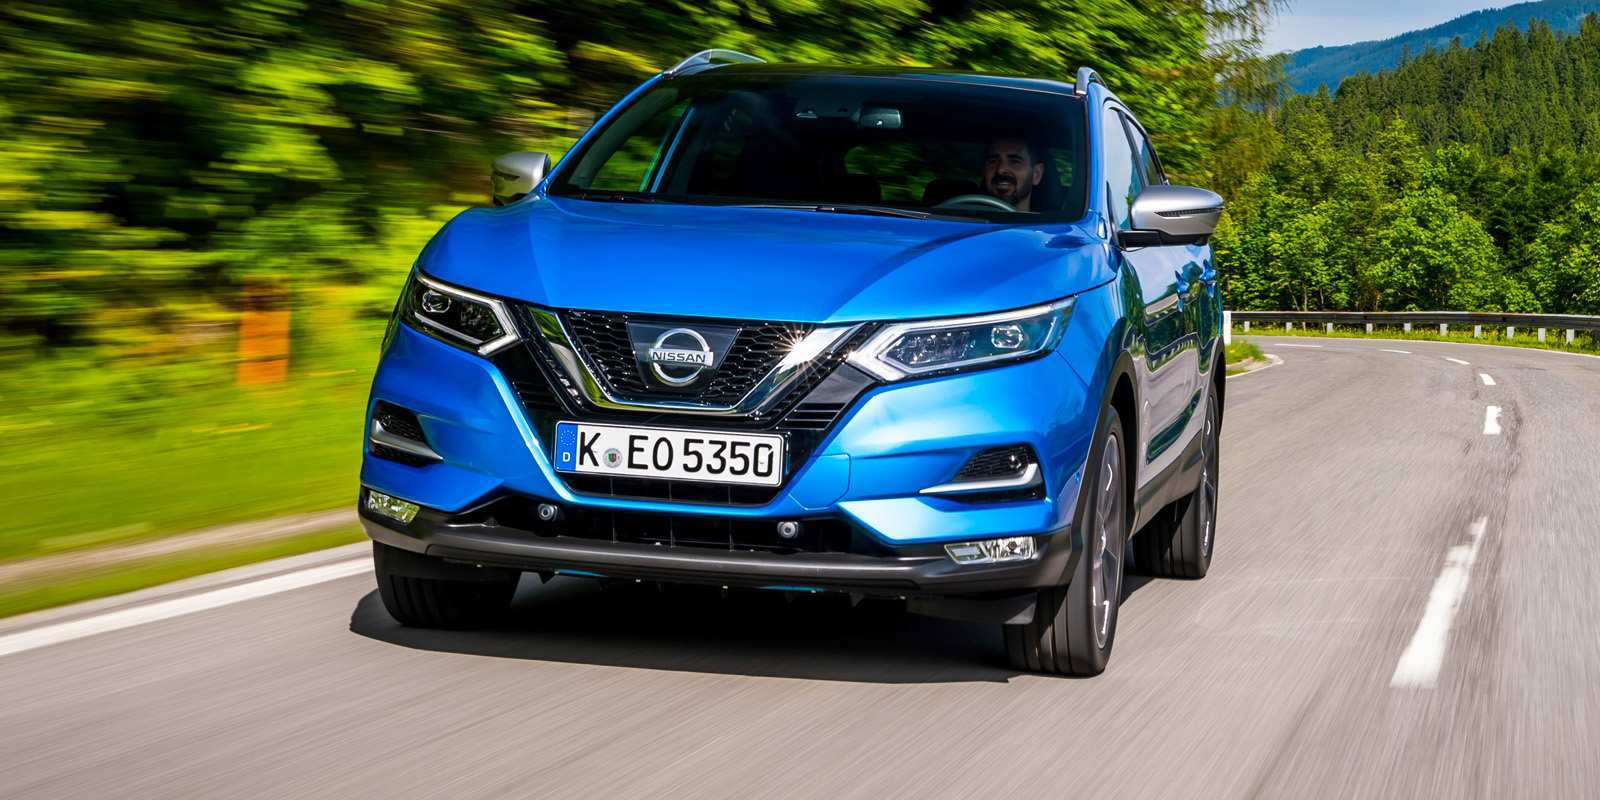 80 All New Nissan Qashqai 2020 Colors Style with Nissan Qashqai 2020 Colors